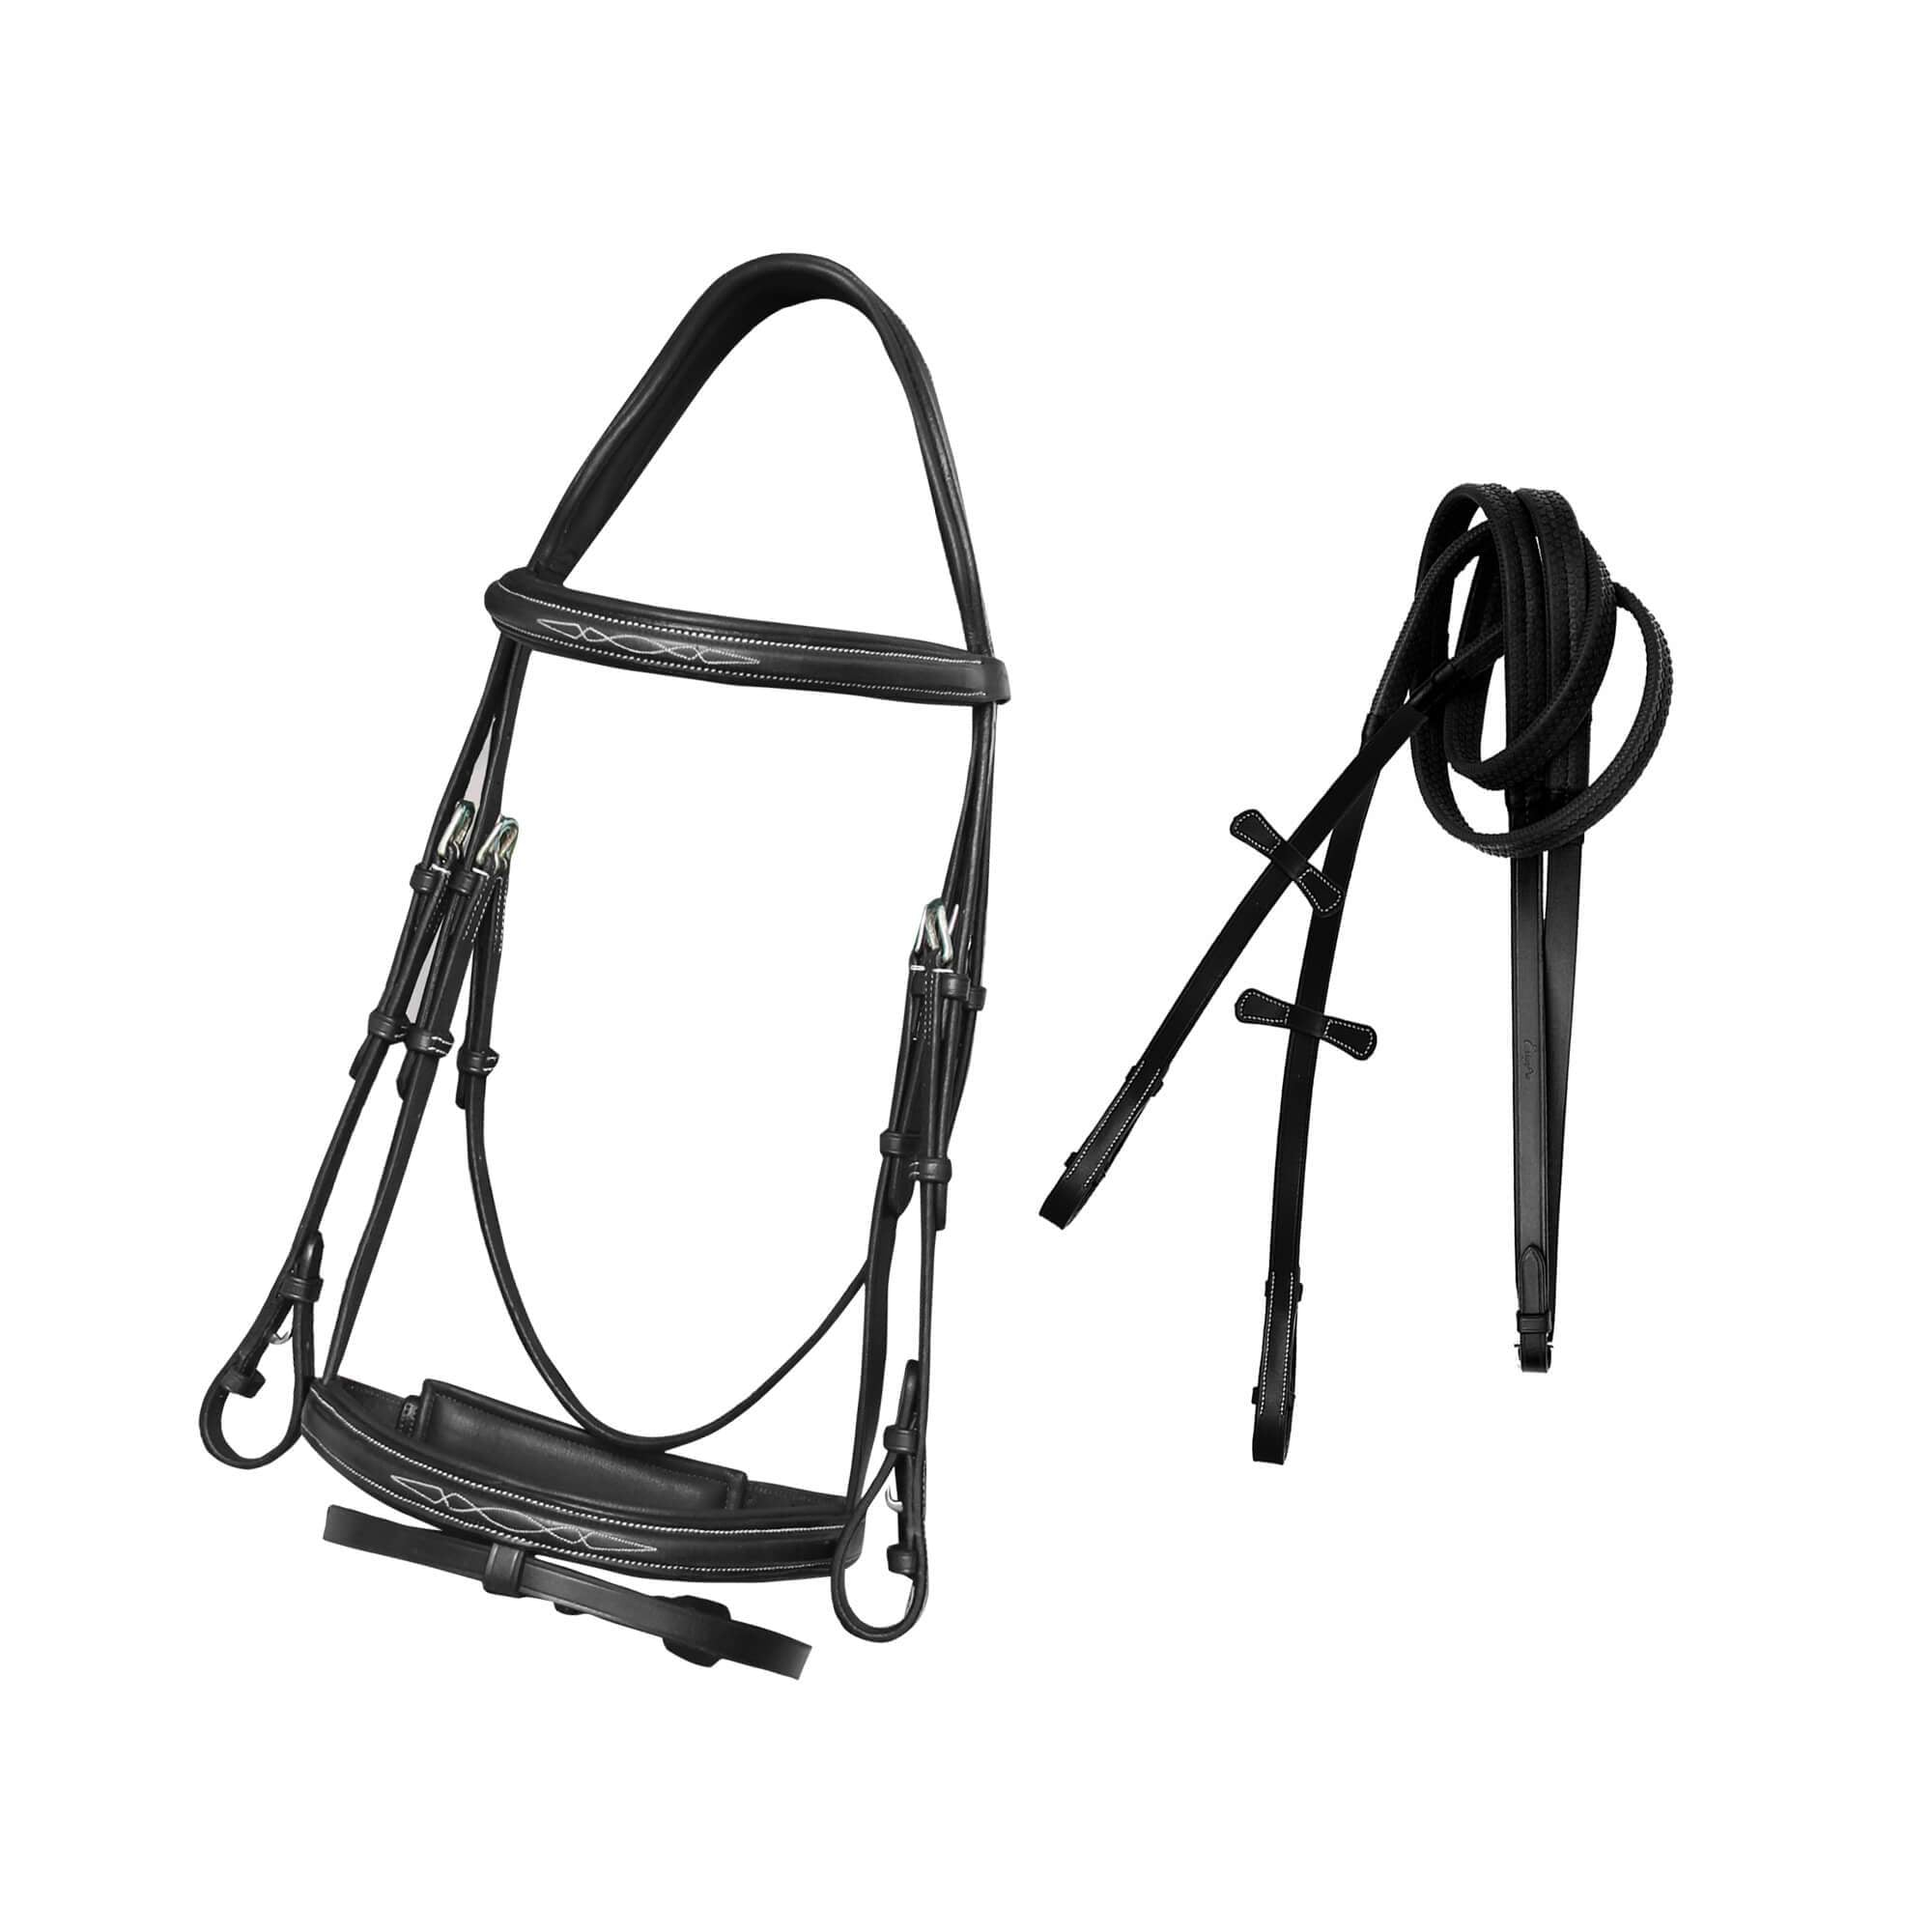 English Bridles-ExionPro Designer Fancy Stitched Bridle with Flash and Rubber Rein-Bridles and Reins